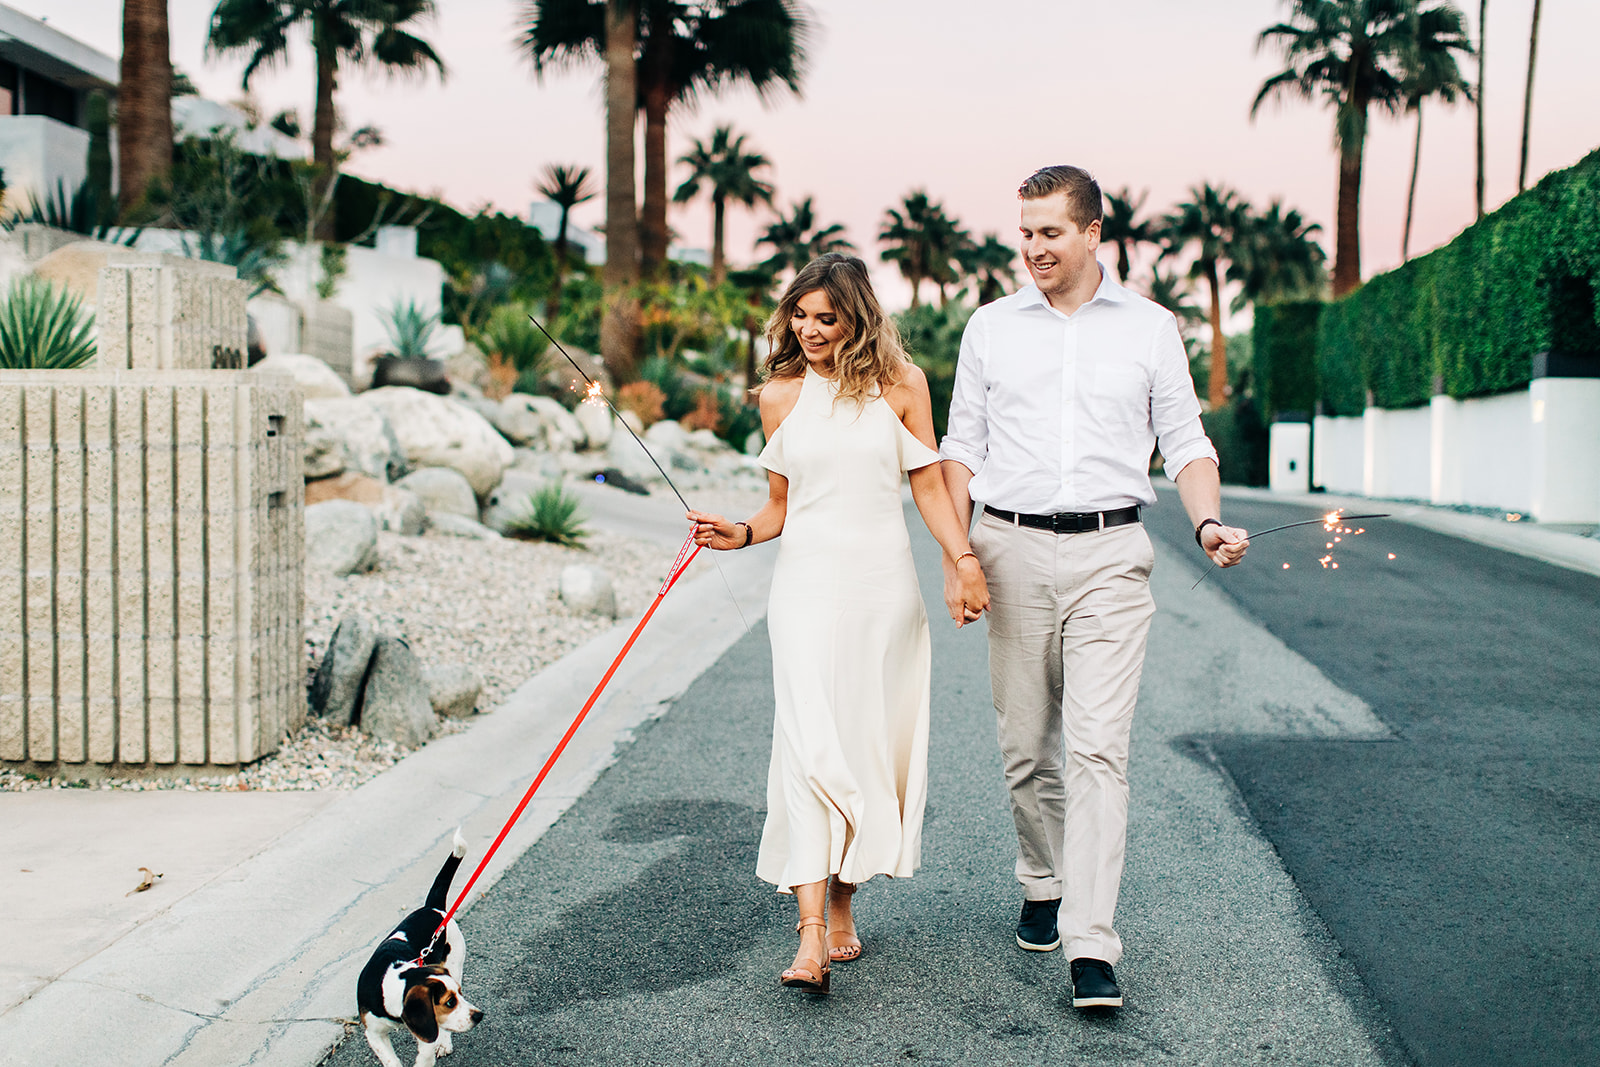 Paulina-Drew_Palm-Springs-Engagement-Photos_Clarisse-Rae_Southern-California-Wedding-Photographer-57